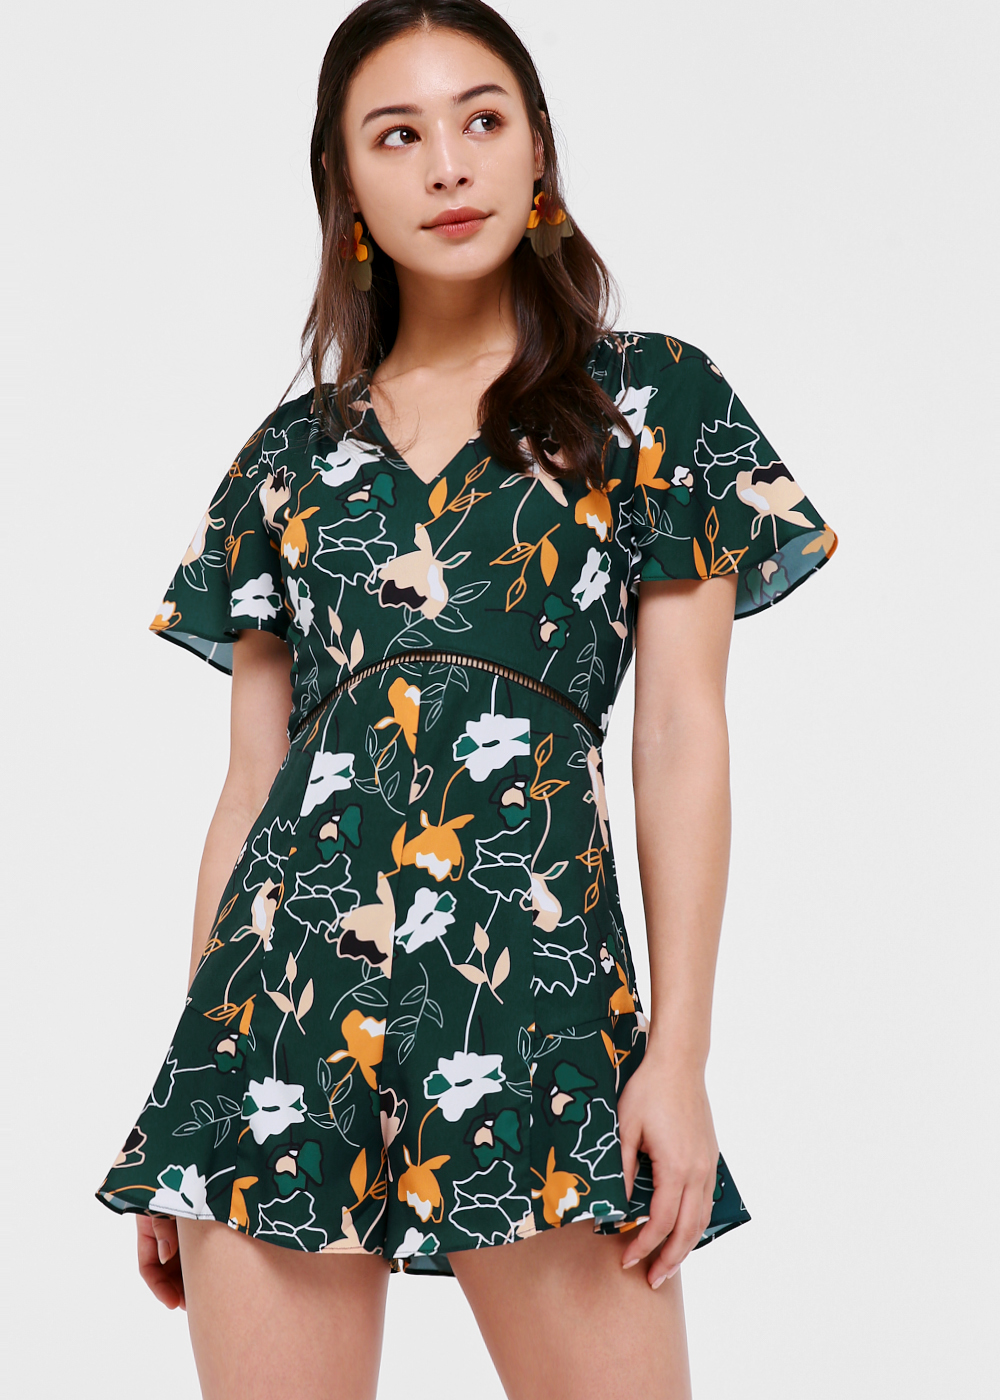 Effie Flare Hem Romper in Forest Whimsy